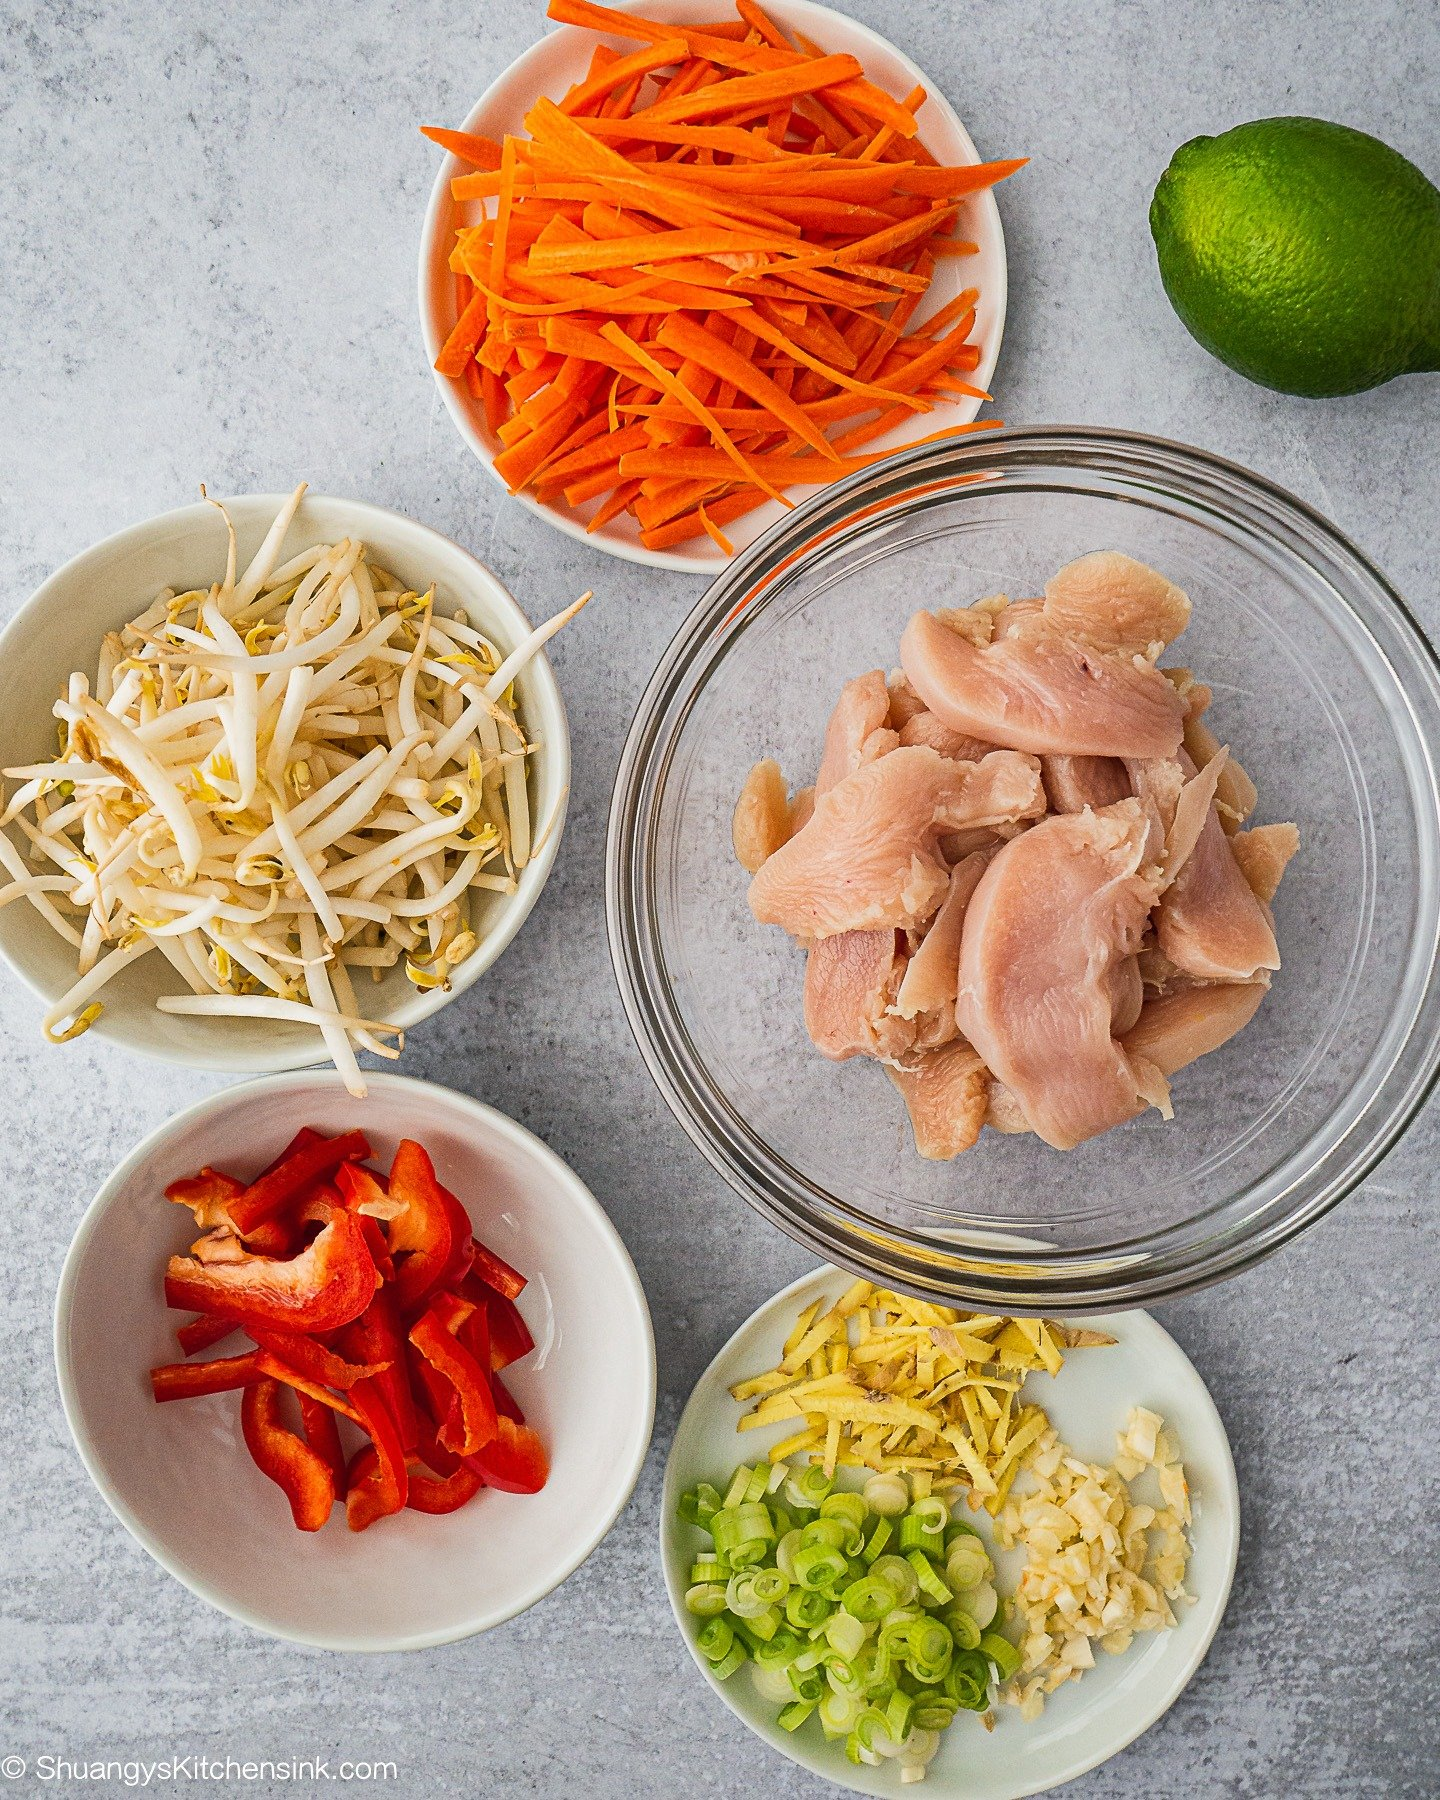 All the ingredients for whole30 pad thai. There are carrots, bean sprouts, chicken, red bell pepper, garlic ginger and green onion.